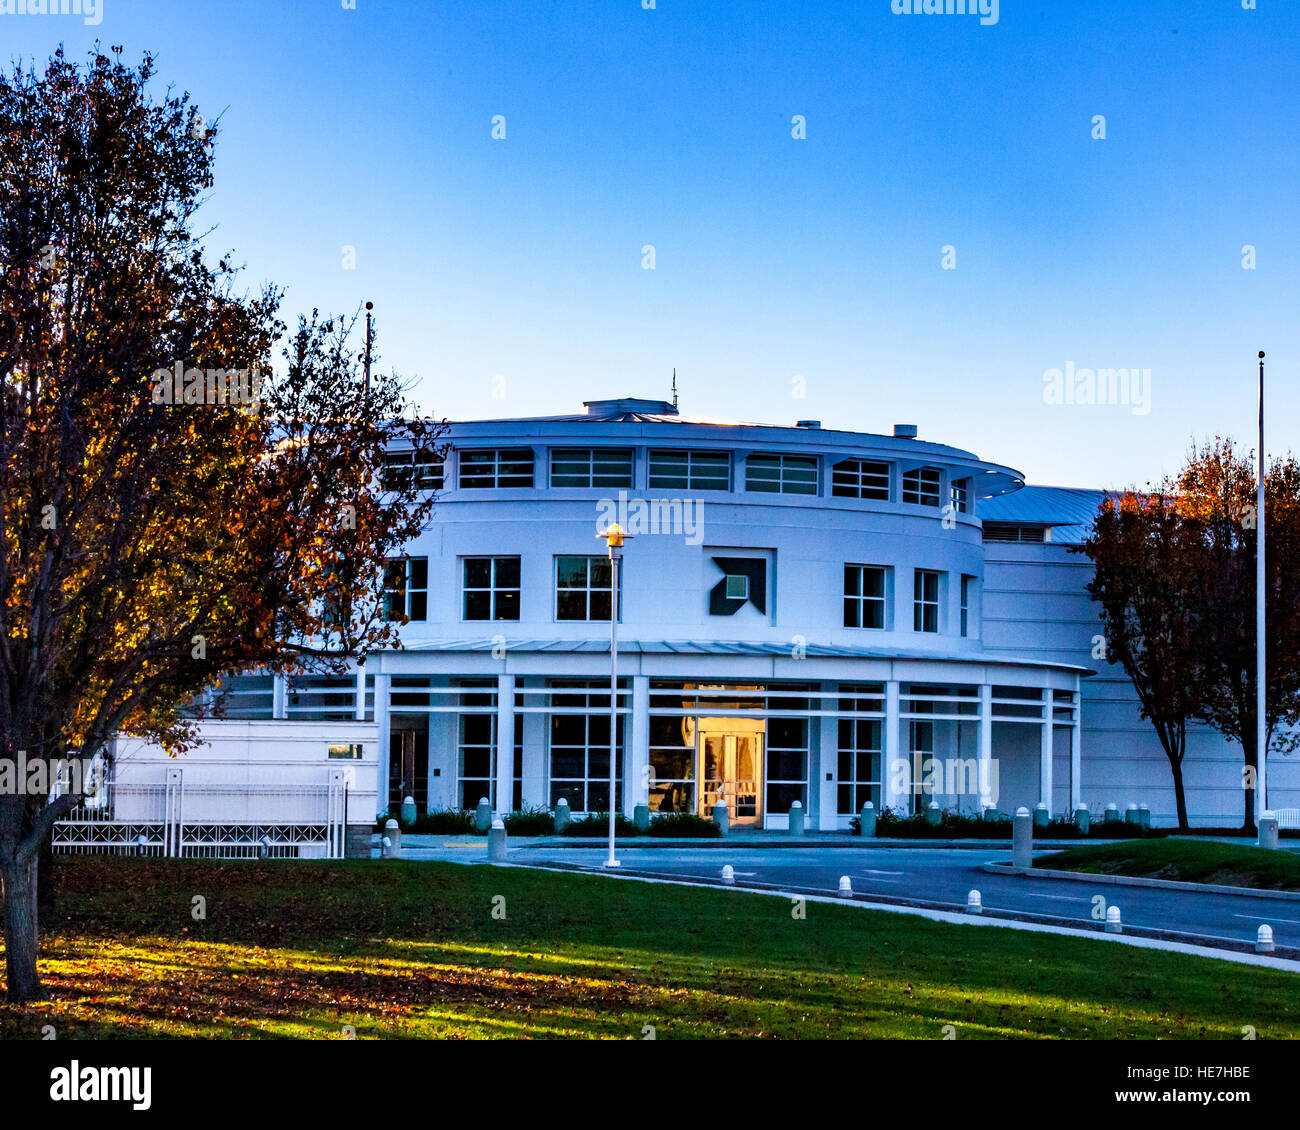 Amd Semiconductor Headquarters In Sunnyvale California Usa At Sunset Stock Photo Alamy